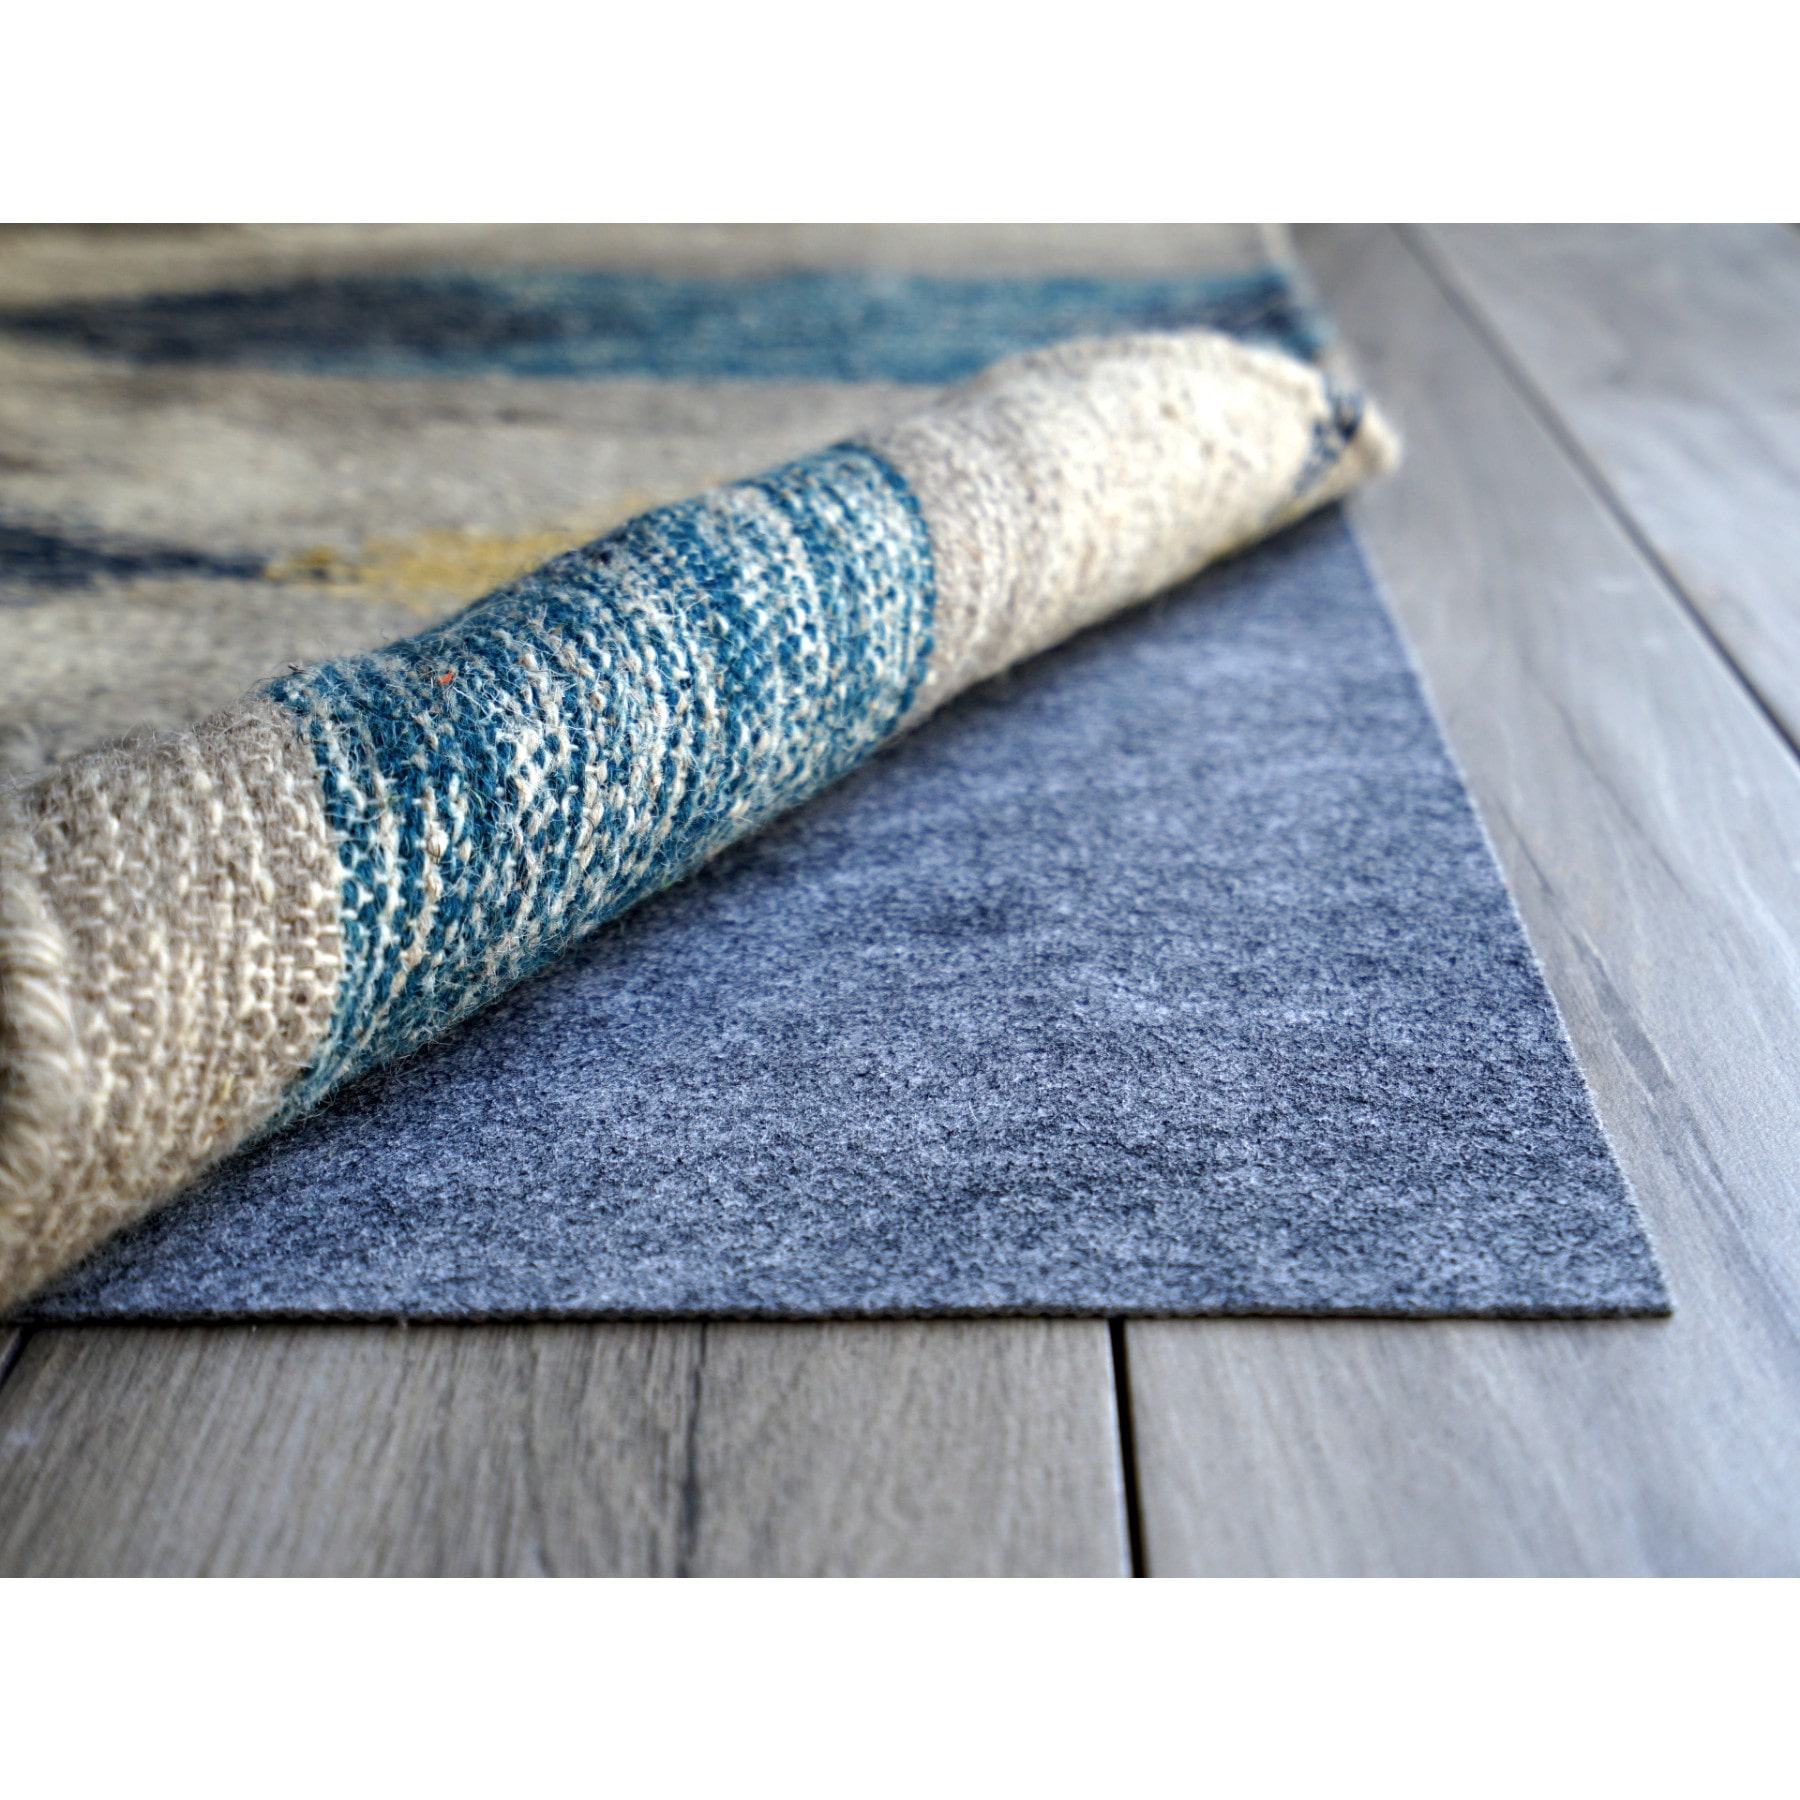 Rug Pad USA AnchorPro Low Profile Non-slip Felt & Rubber Rug Pad (2' x 18') by Overstock